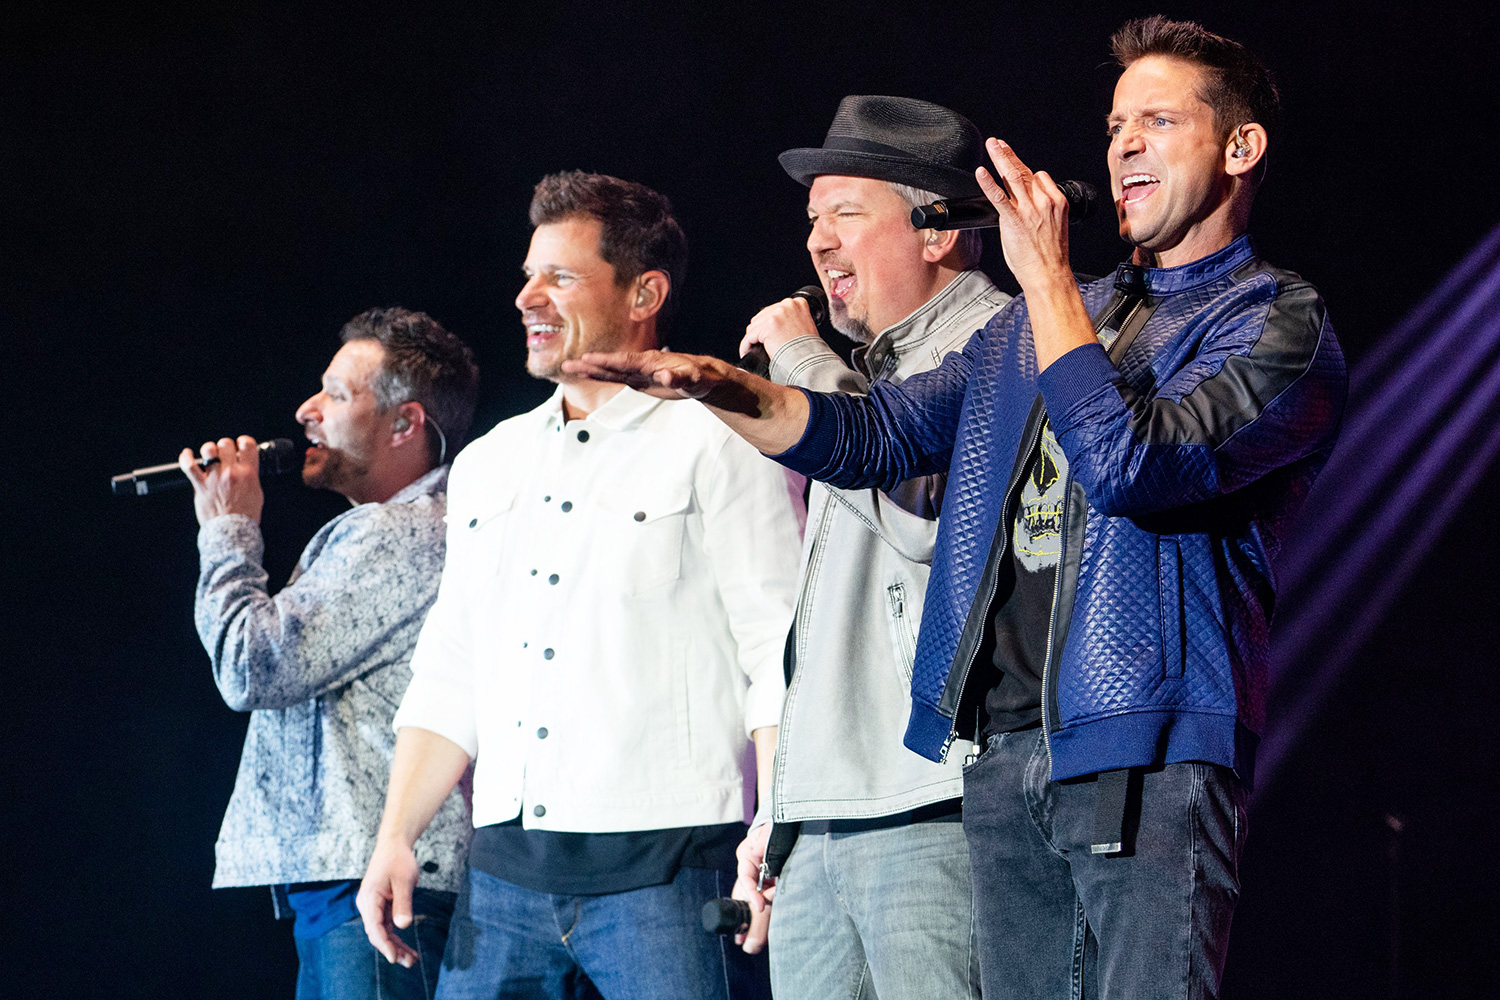 Jeff Timmons, Justin Jeffre, Nick Lachey and Drew Lachey 98 Degrees in concert at The Coconut Creek Casino, Coconut Creek, Florida, USA - 28 Feb 2020